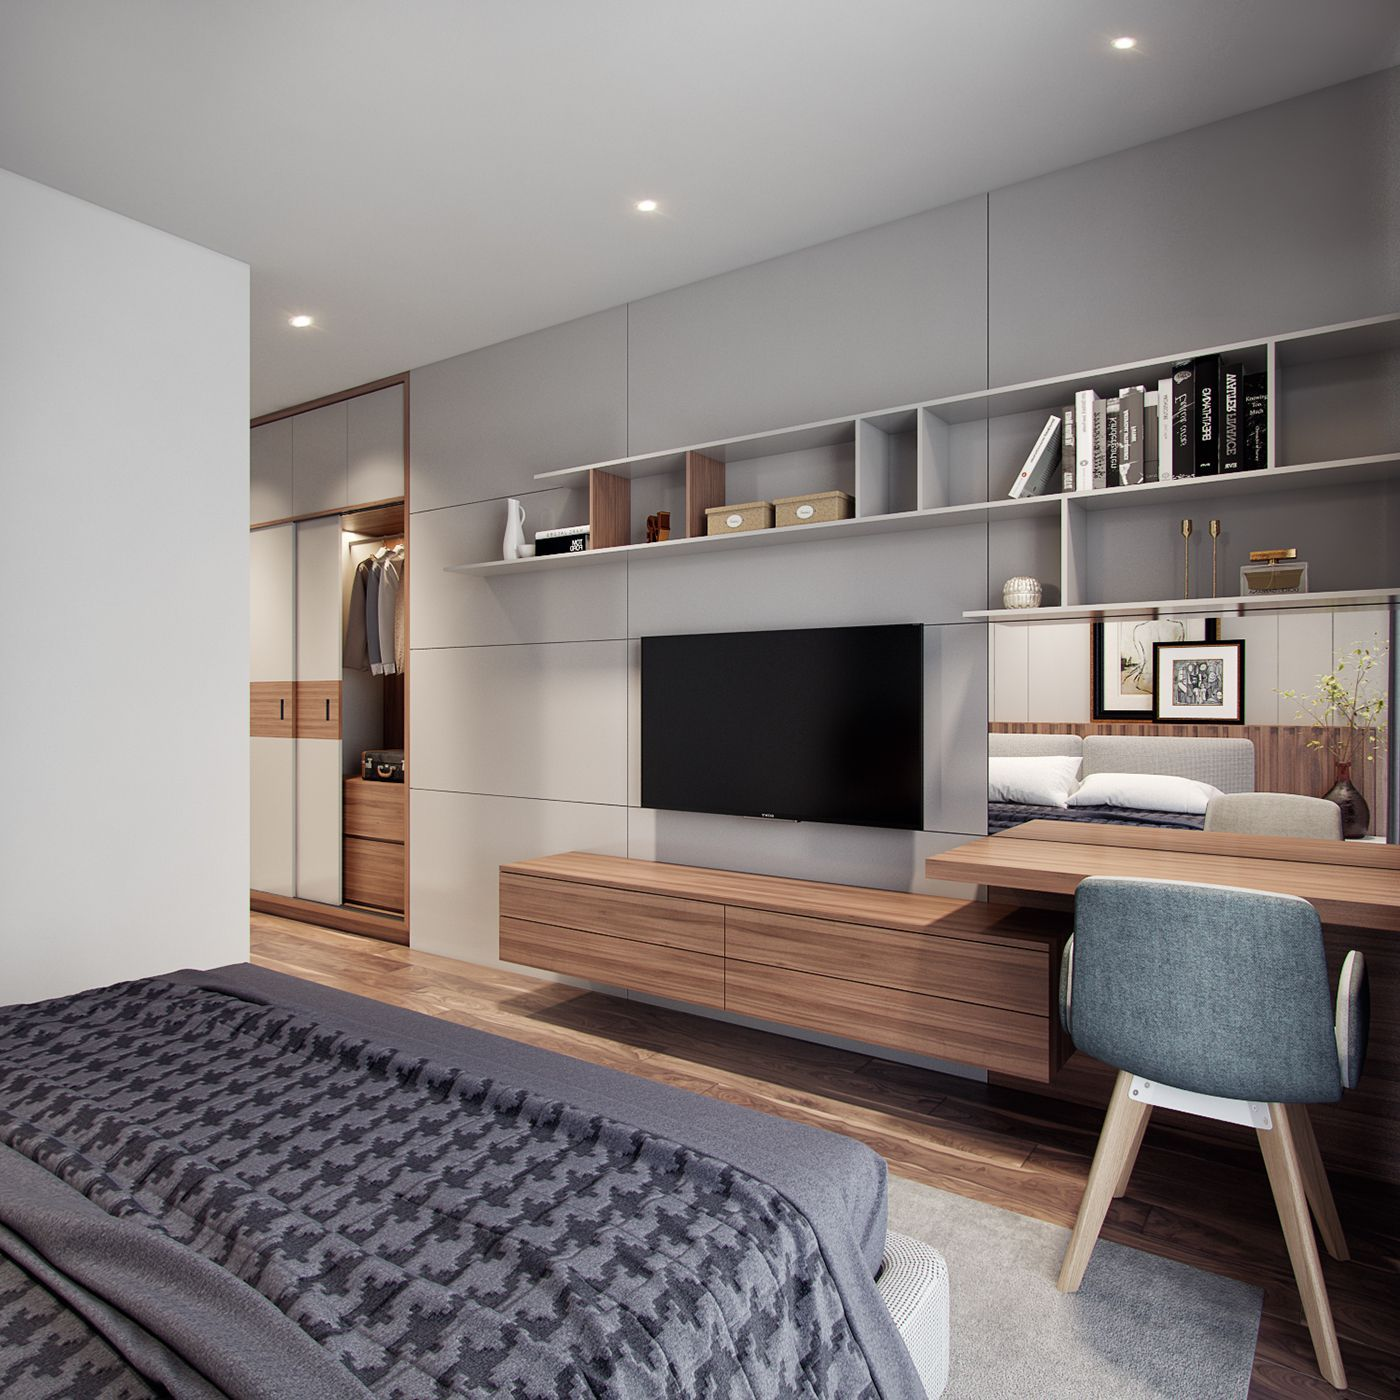 Bedroom Ideas 52 Modern Design Ideas For Your Bedroom: 16+ Unique Modern Bedroom Design Ideas For Your